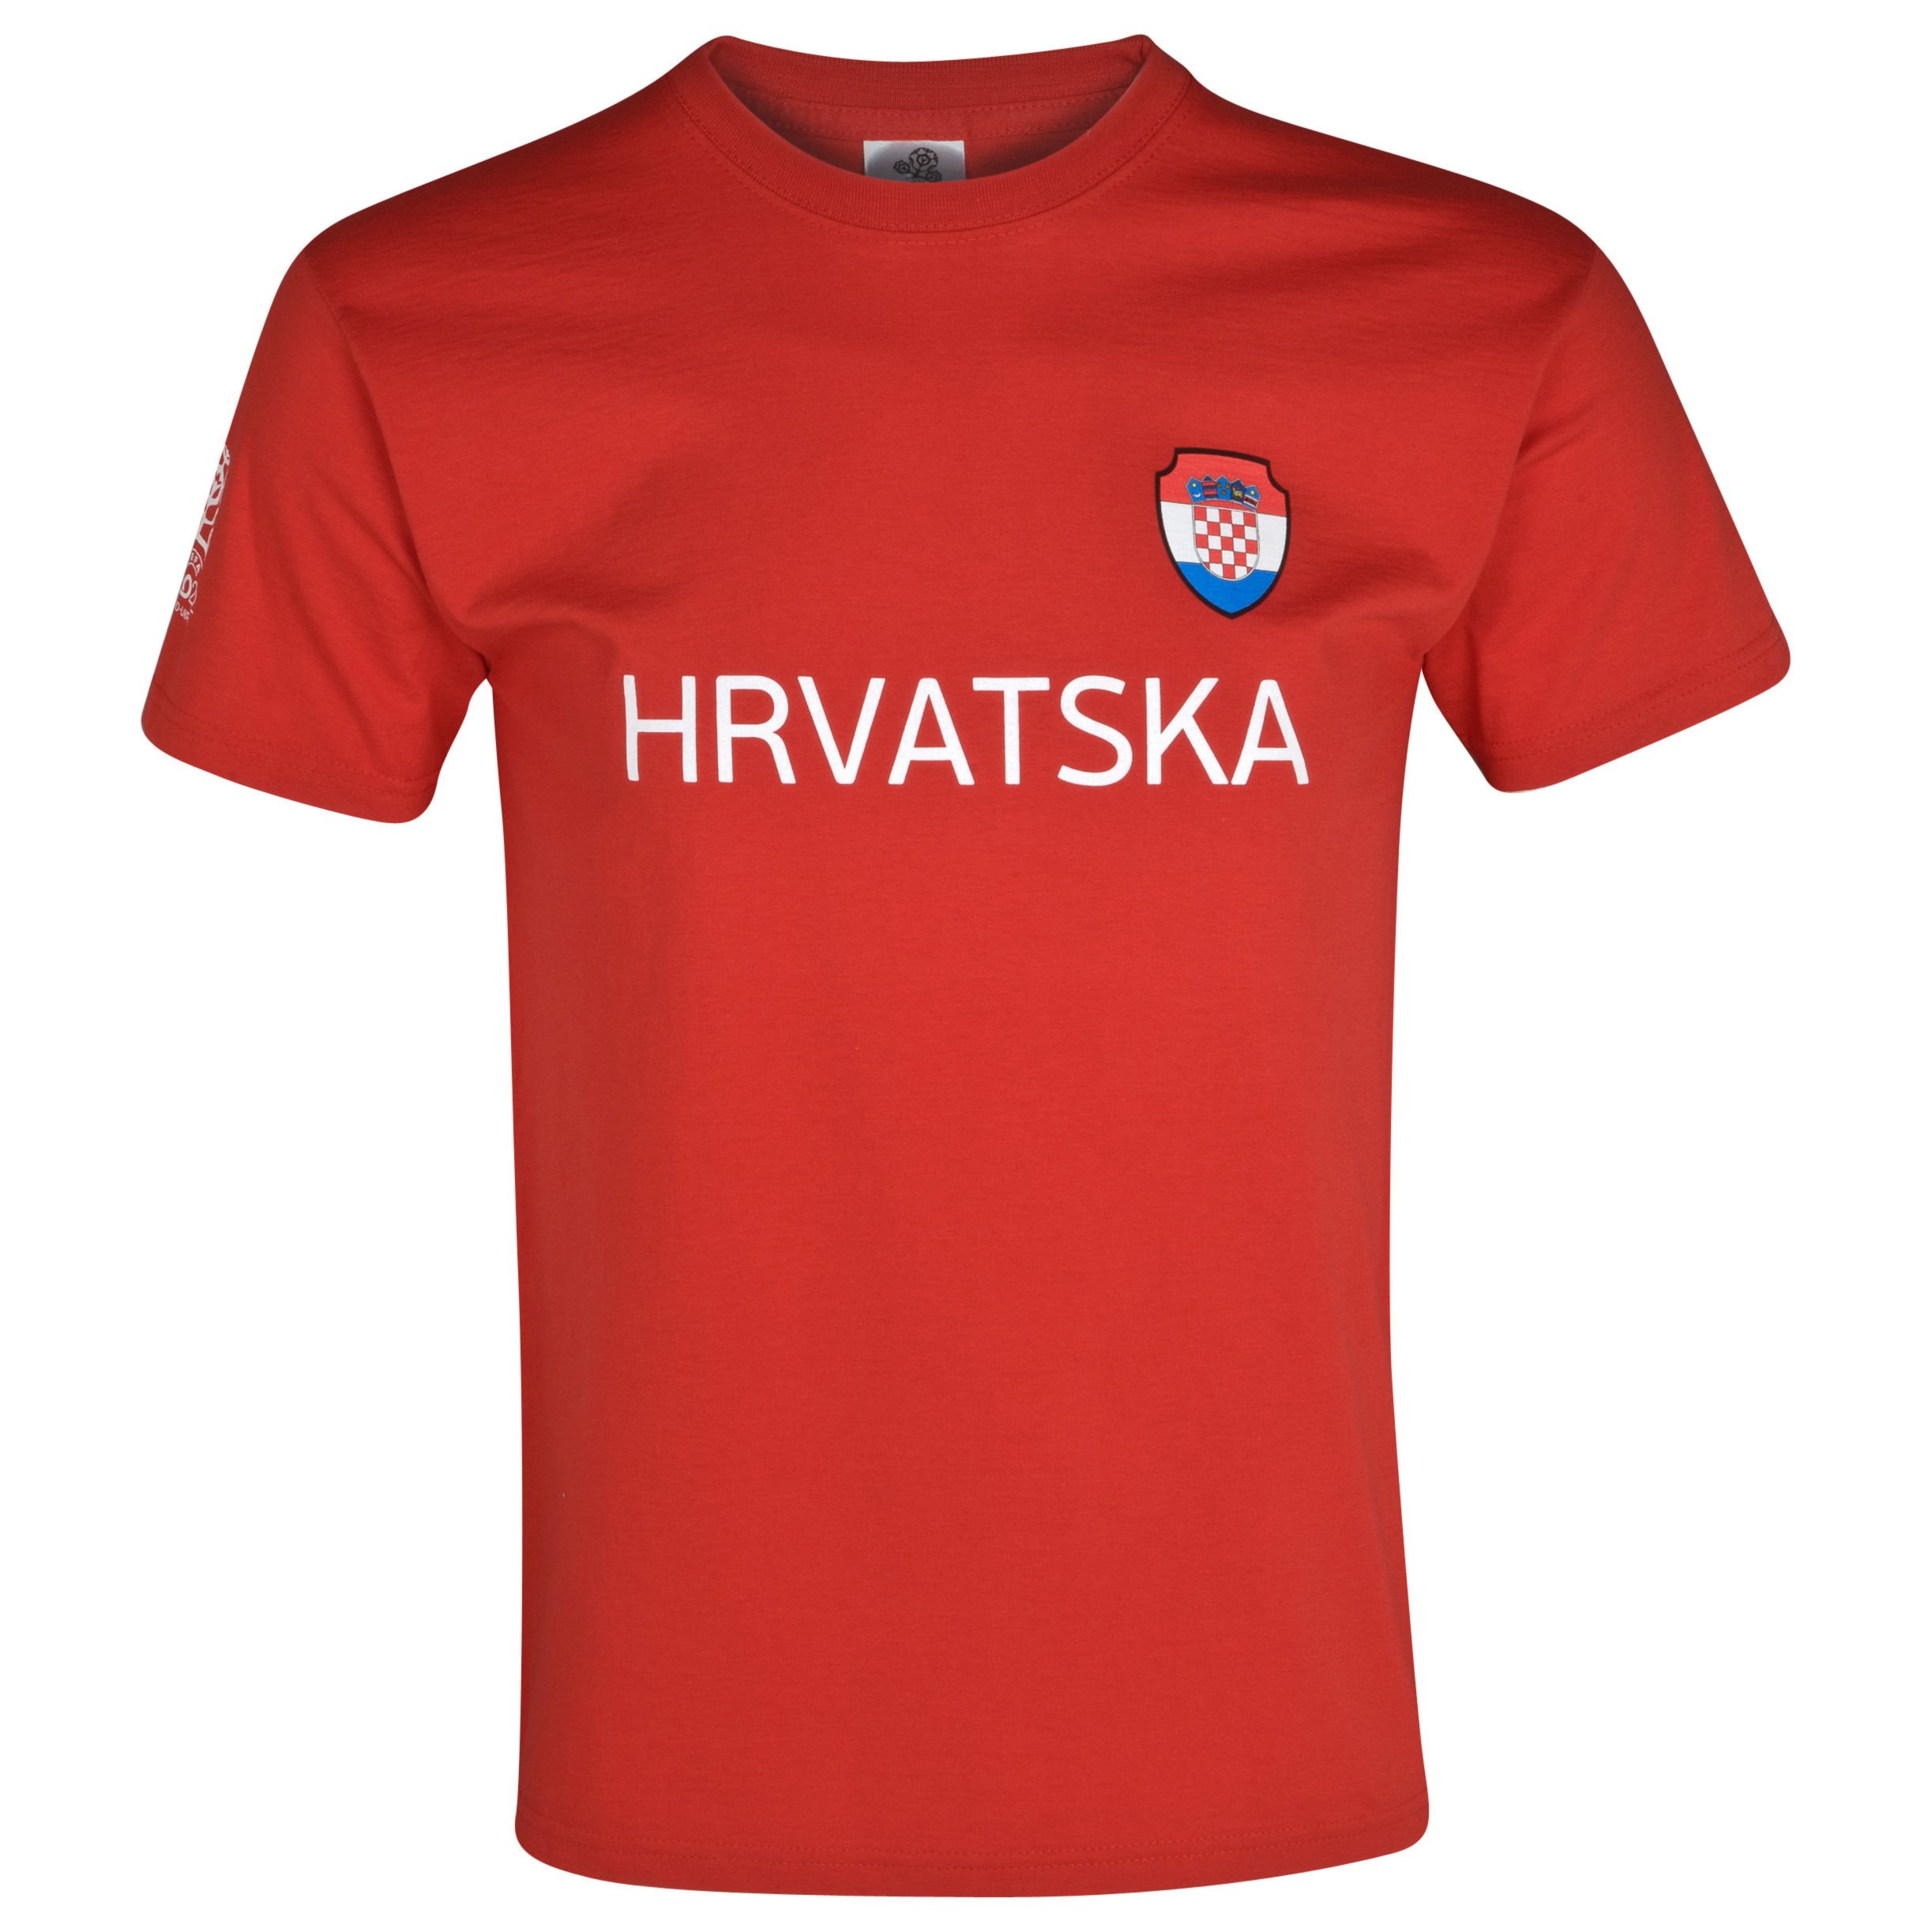 Euro 2012 Croatia T-Shirt - Red/White